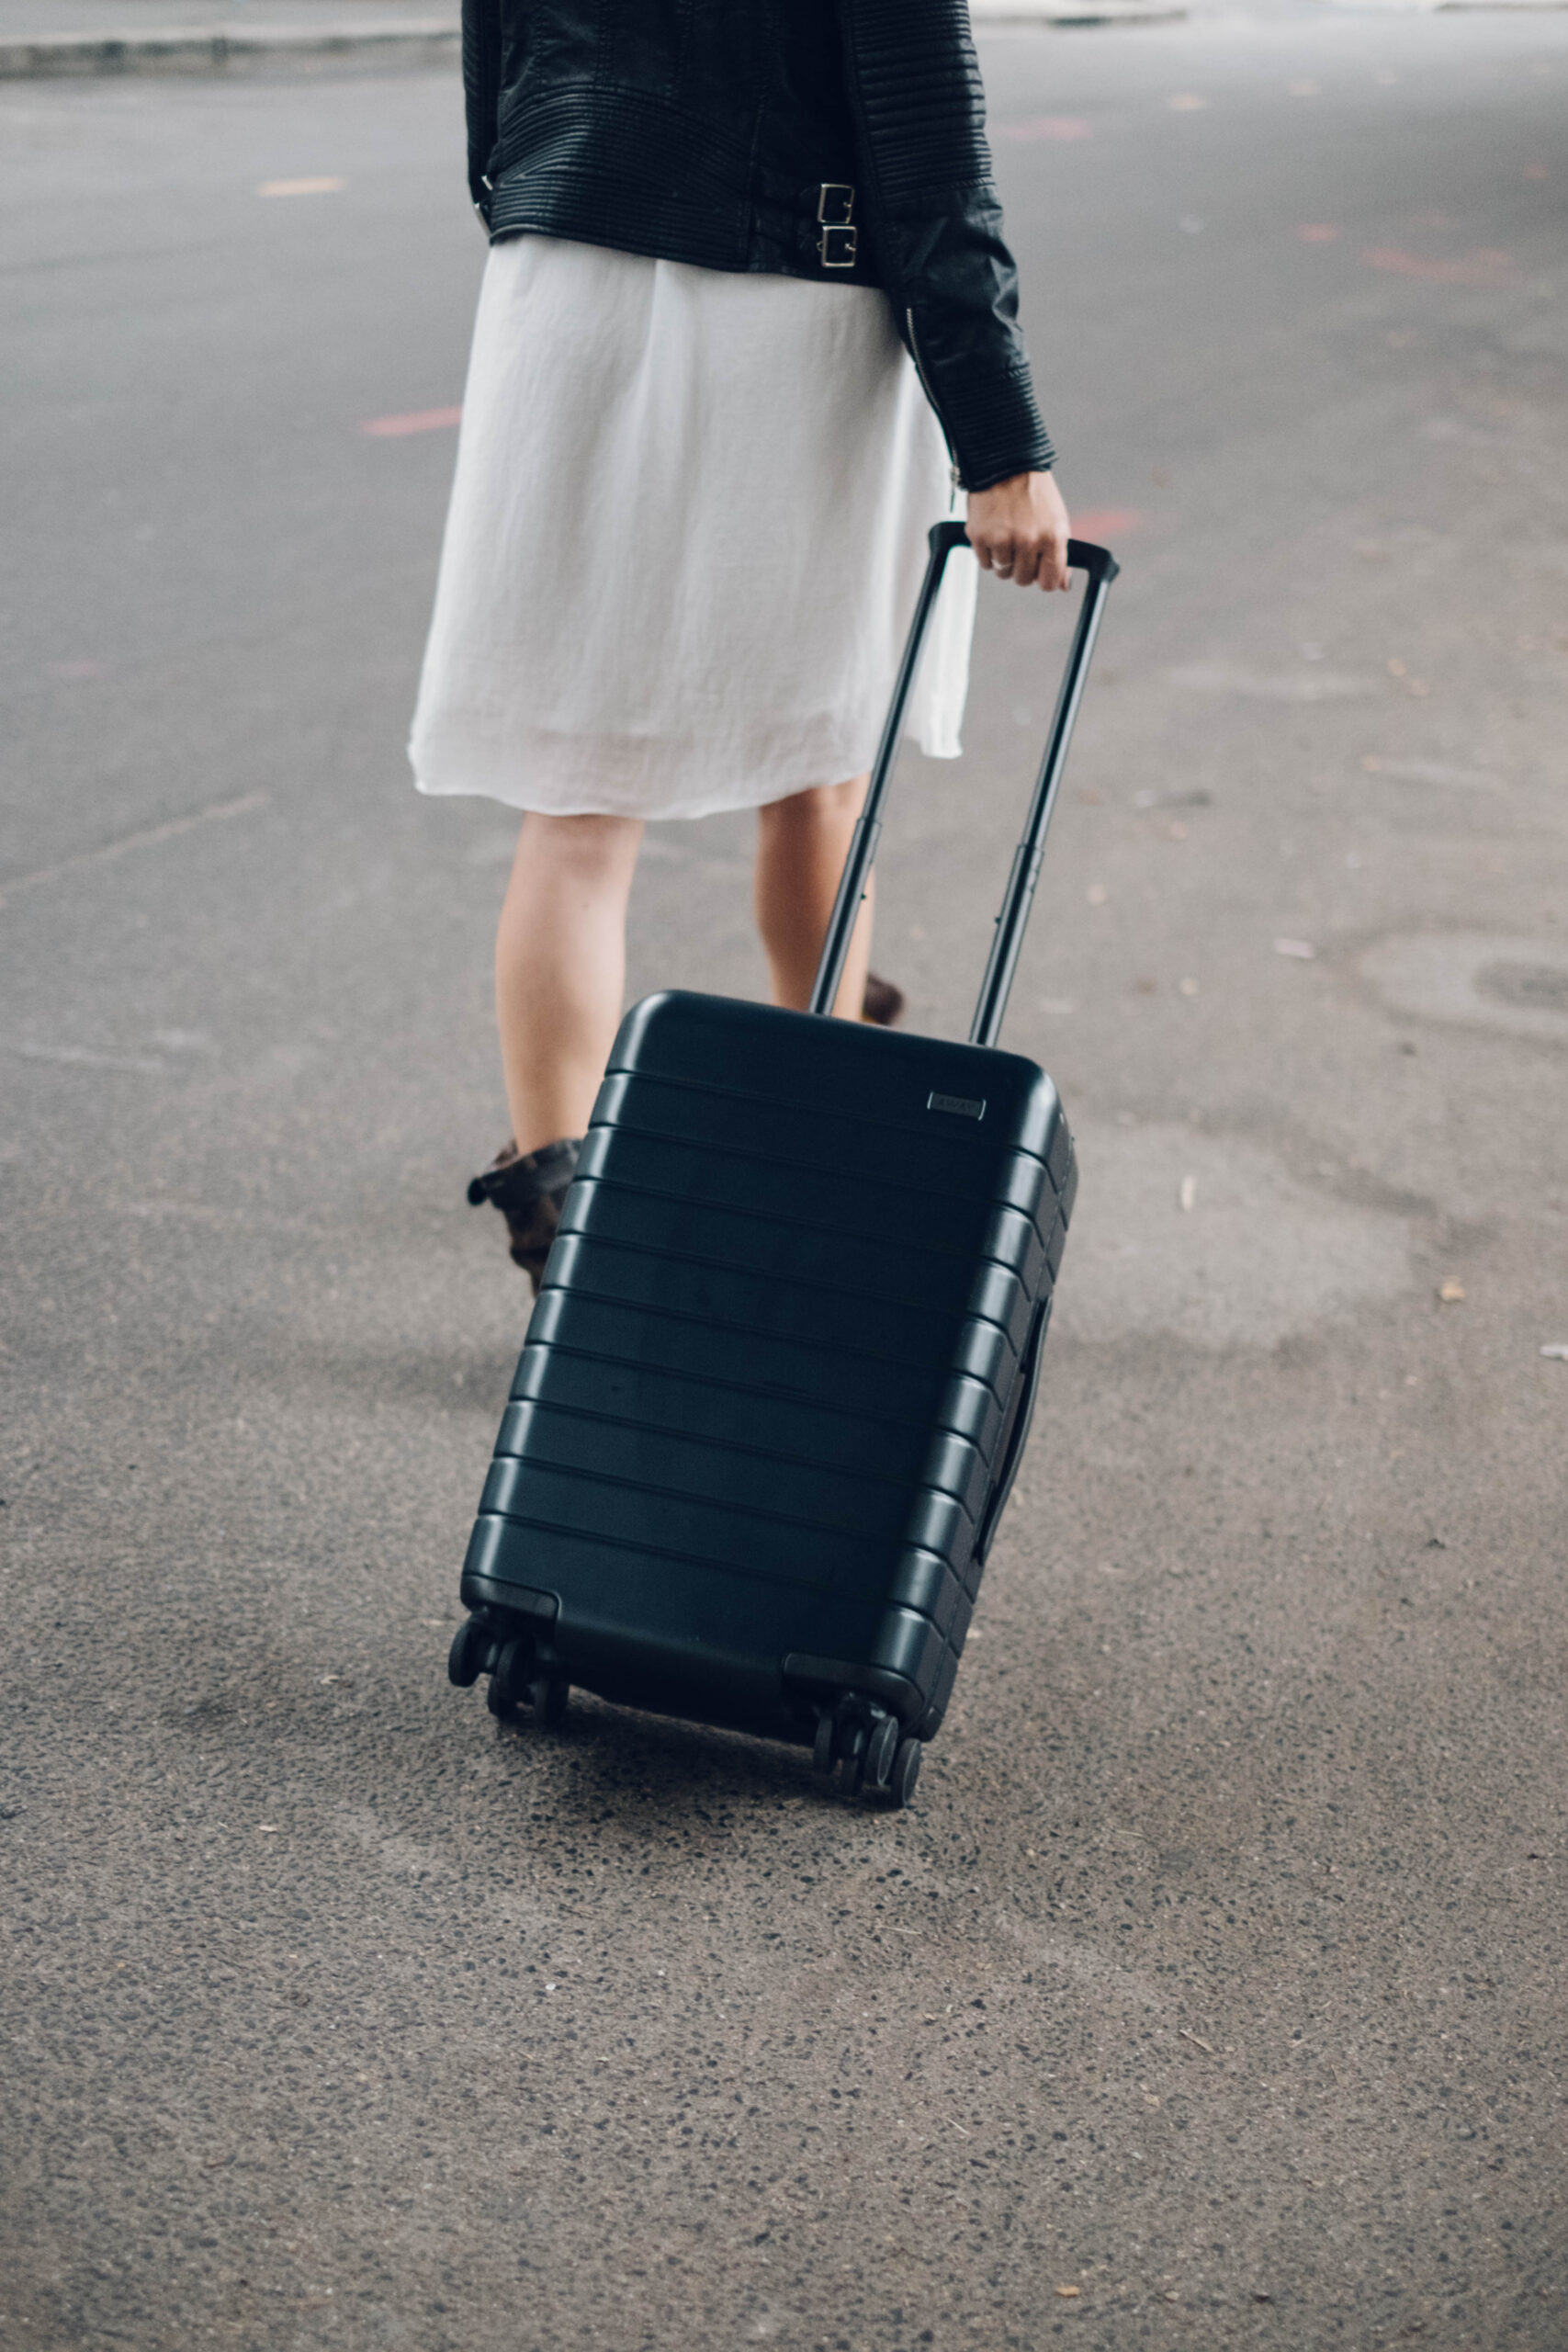 International Travel in a Carry-On